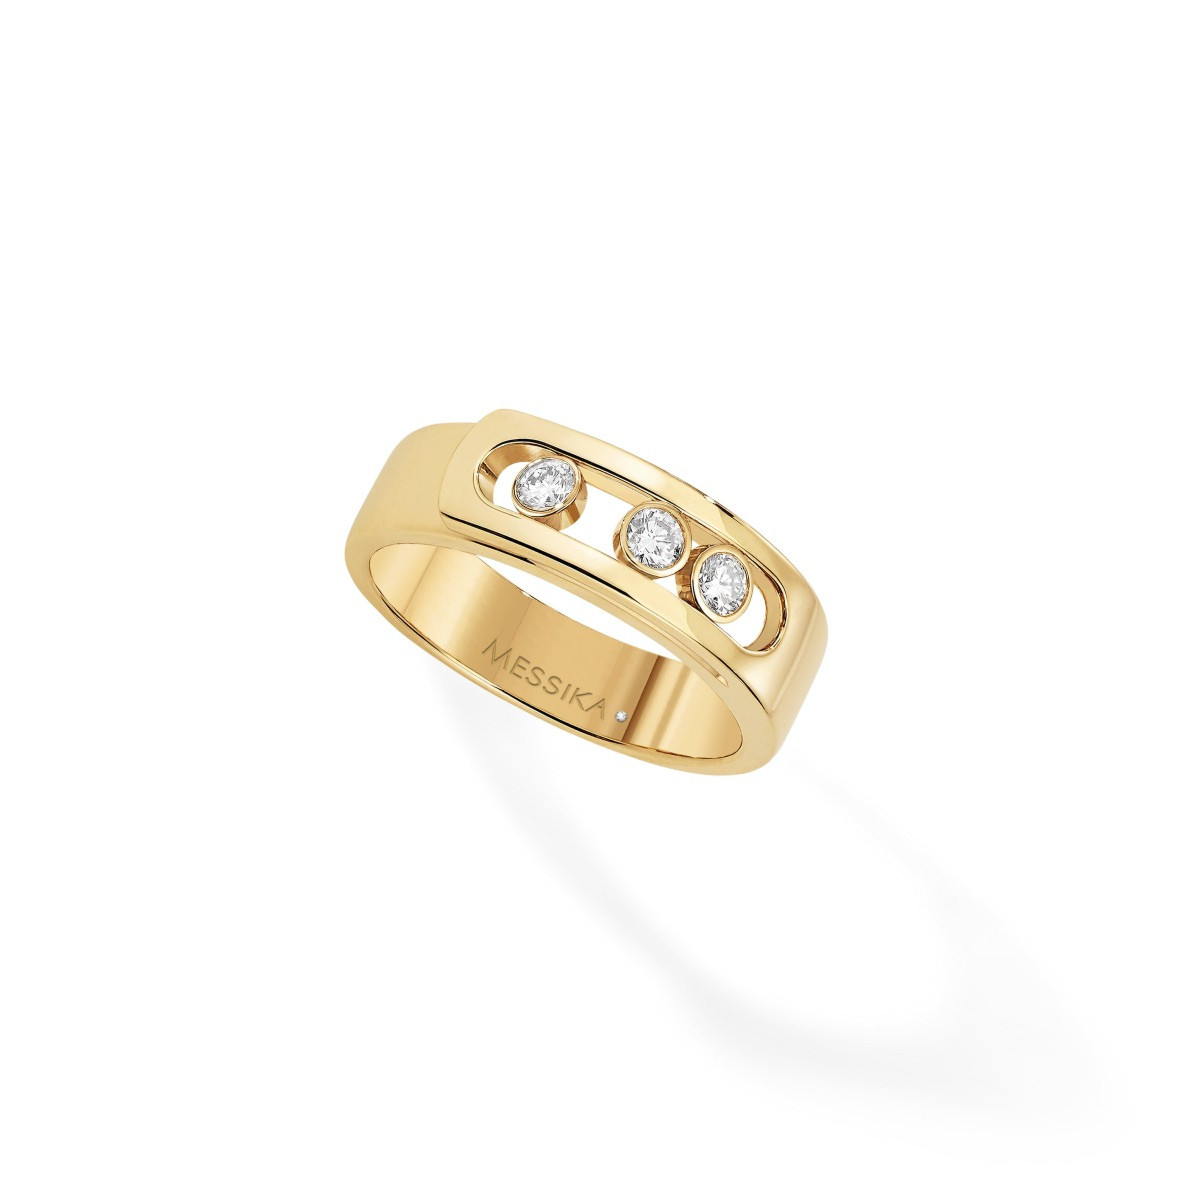 Messika Move Noa Diamond Cage Band Ring in 18K Gold front view